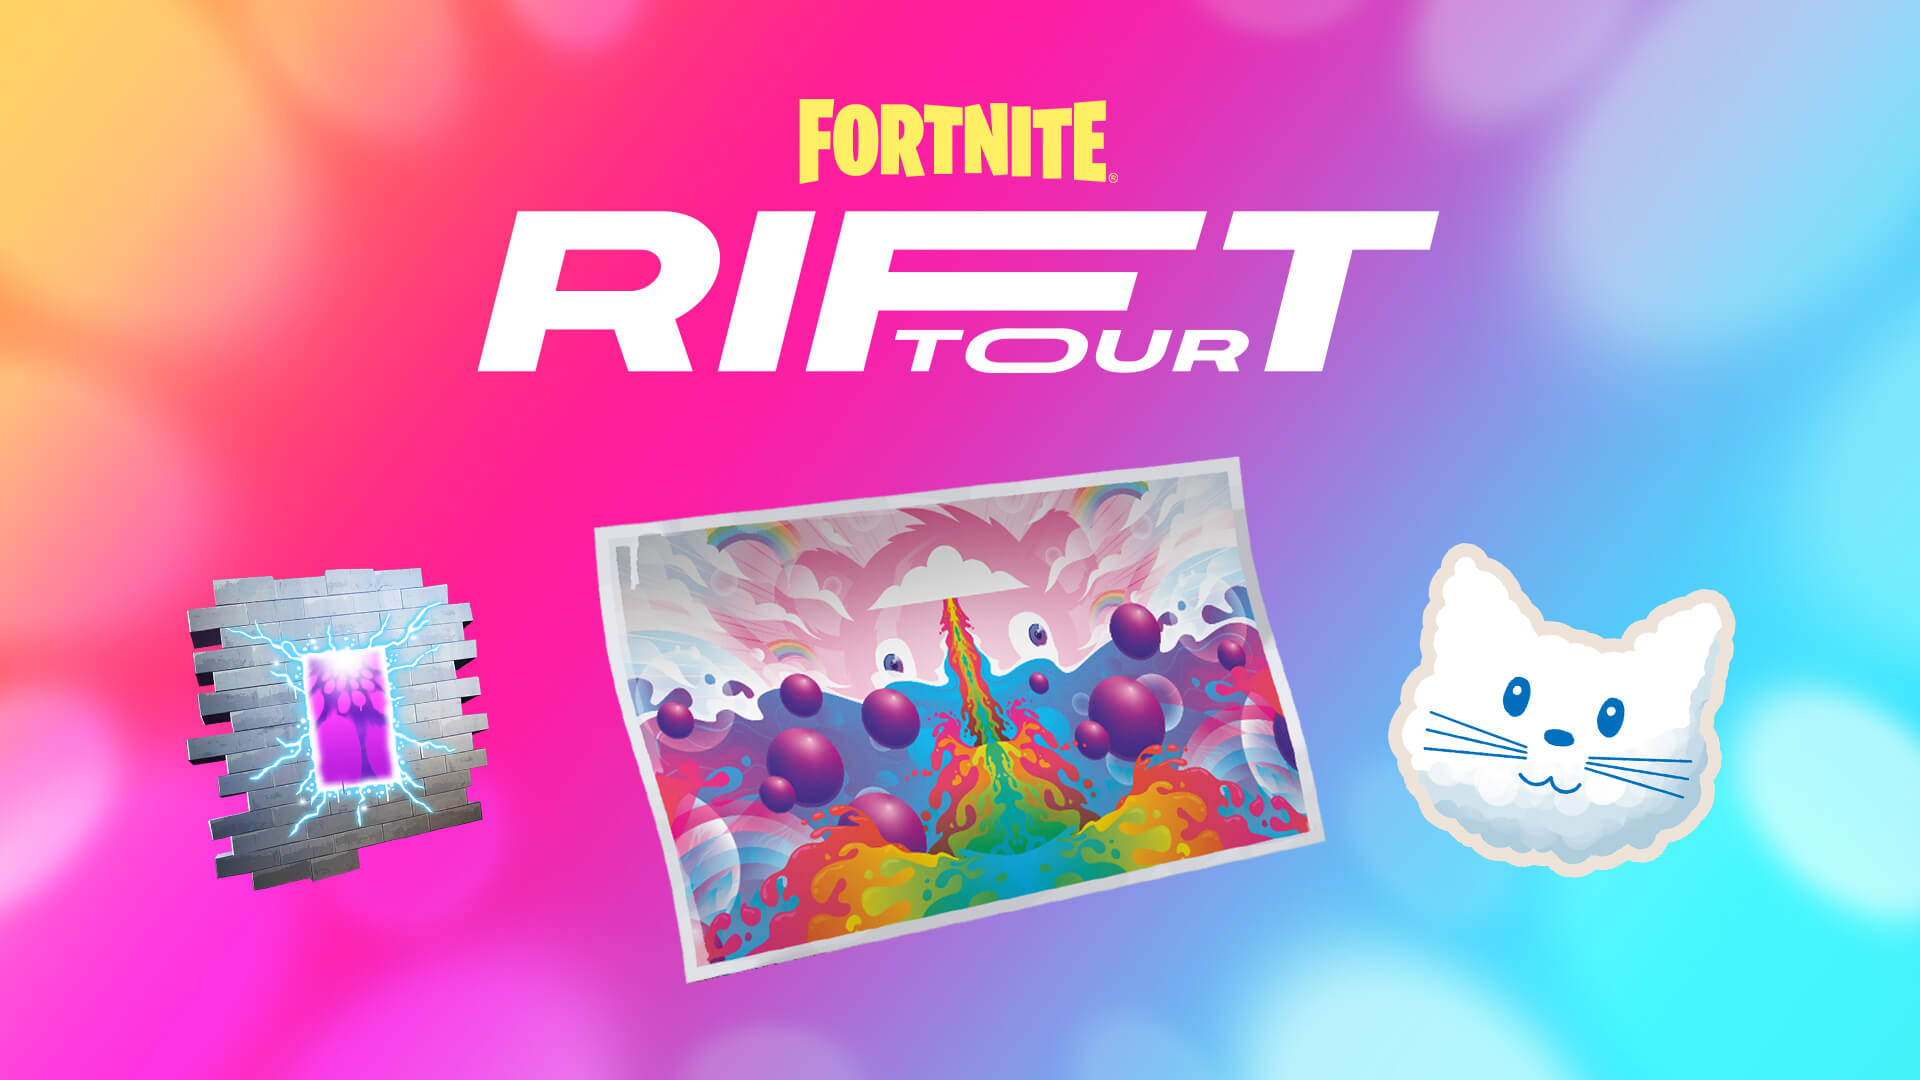 Fortnite Presents The Rift Tour - An In-Game Musical Experience